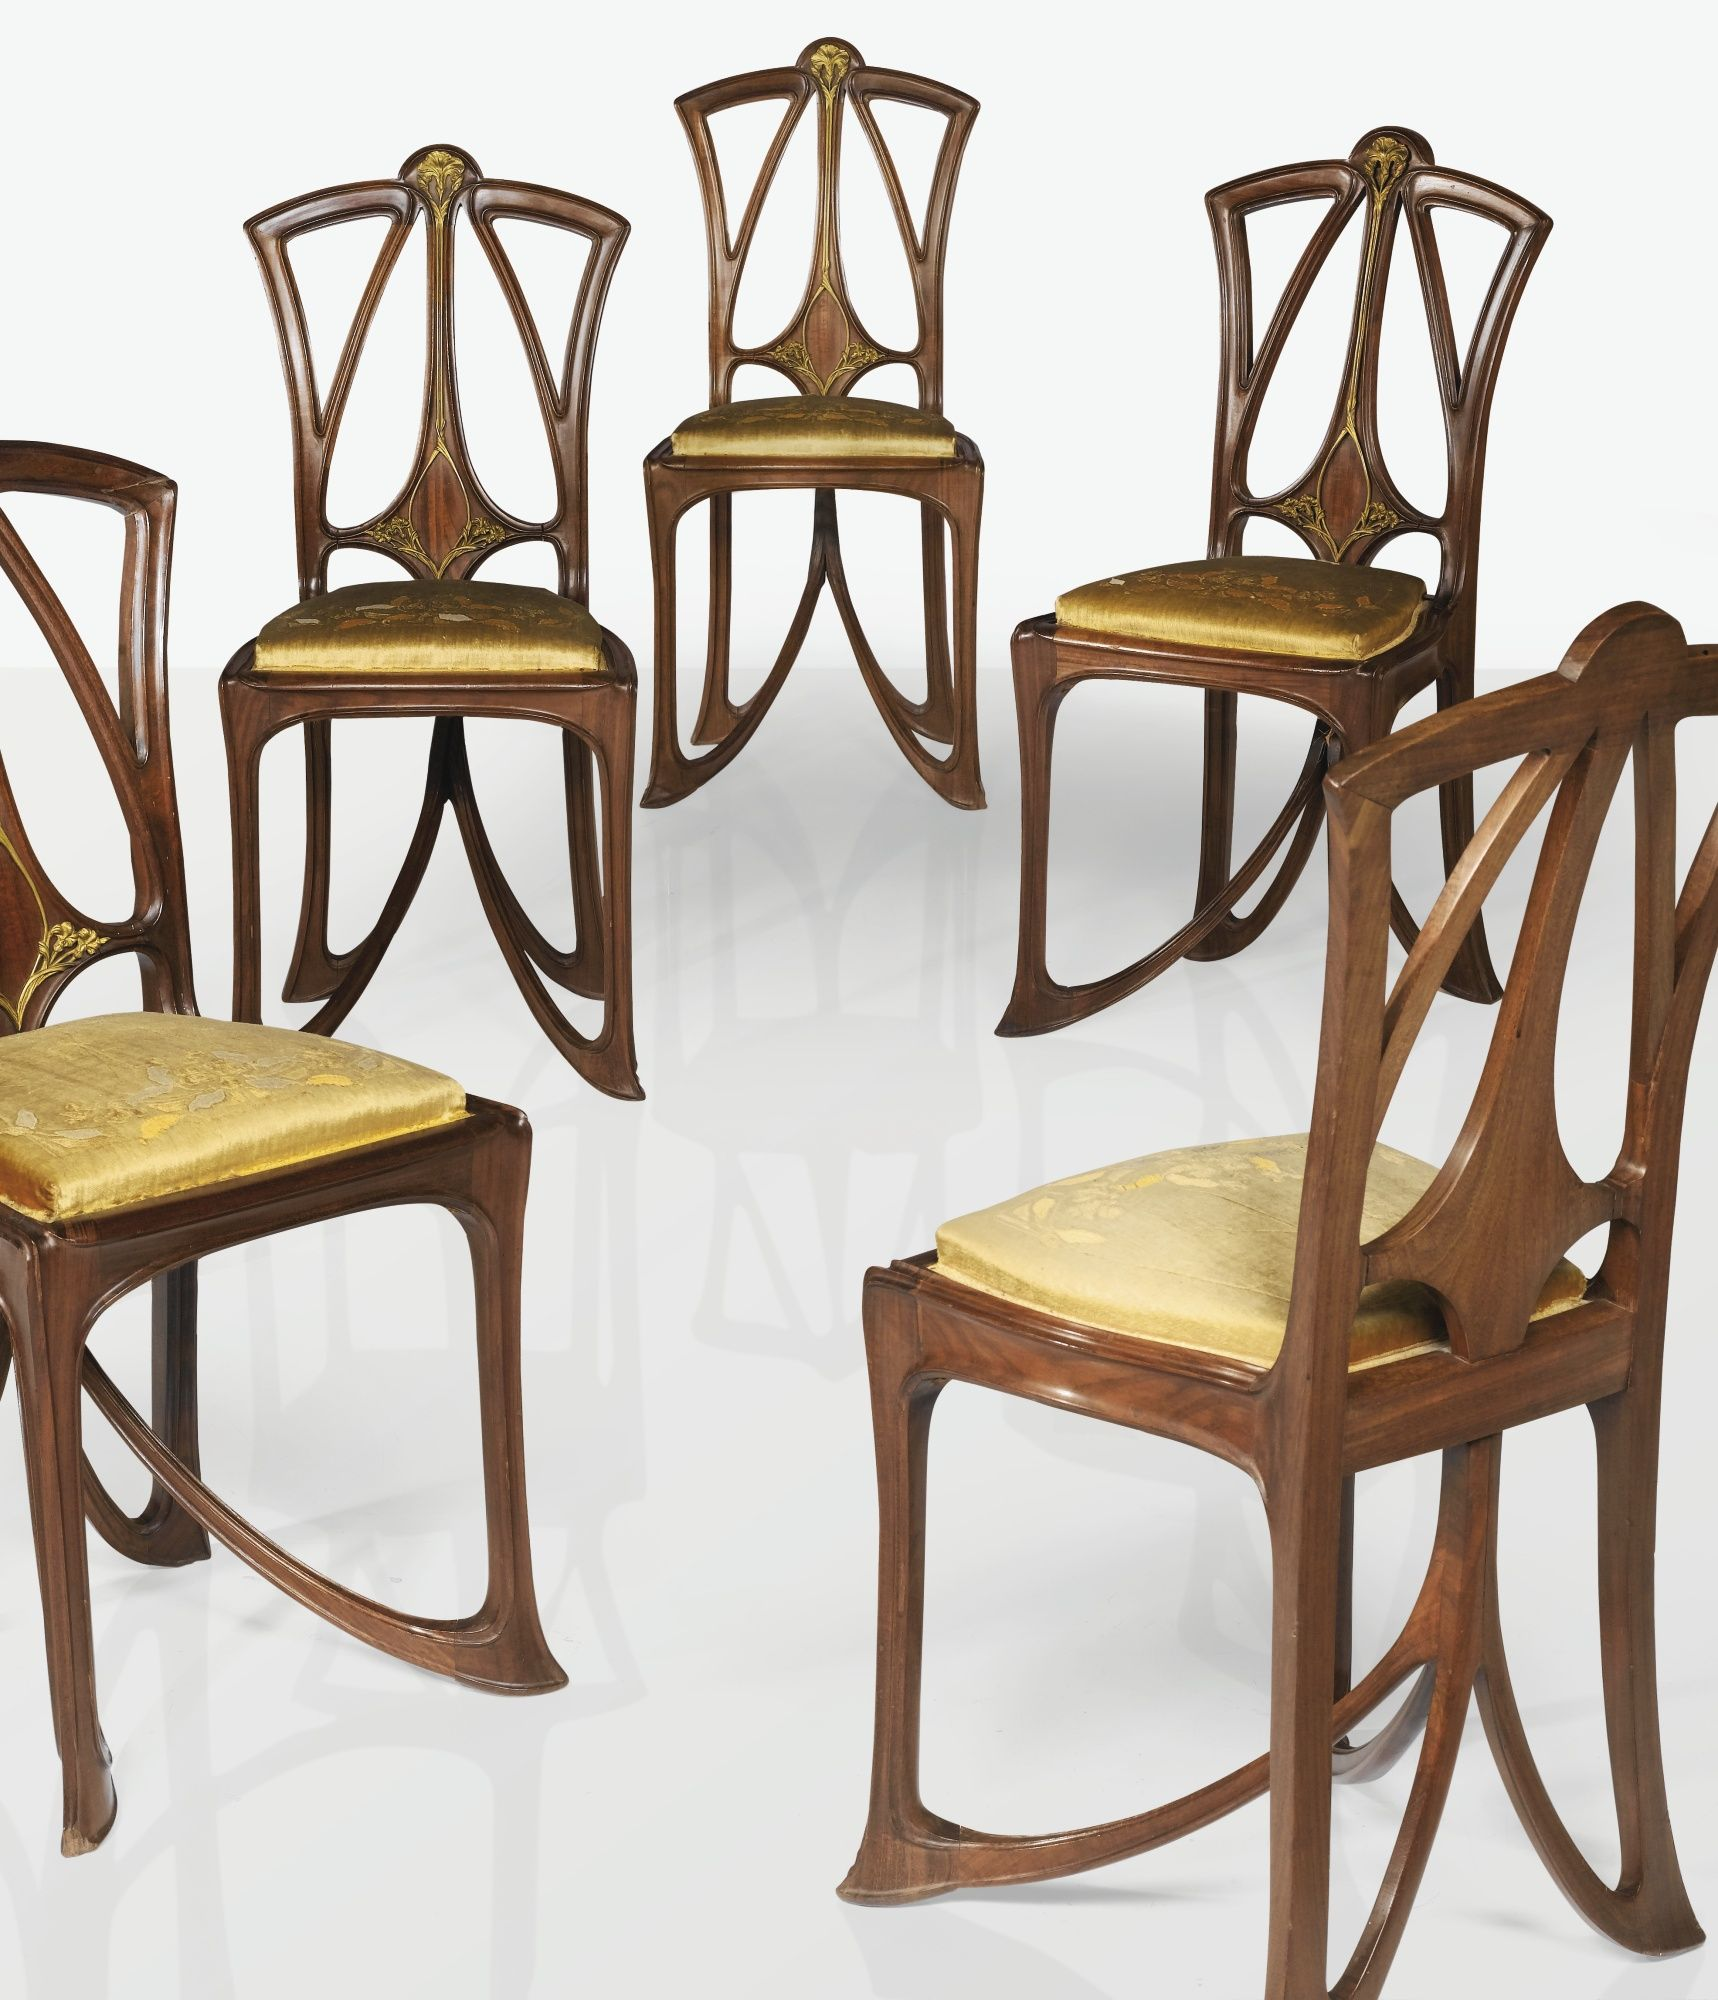 modern art nouveau furniture. Louis Majorelle A SET OF FIVE MAHOGANY AND GILT-BRONZE CHAIRS WITH ORIGINAL VELVET UPHOLSTERY. Art Nouveau Modern Furniture I